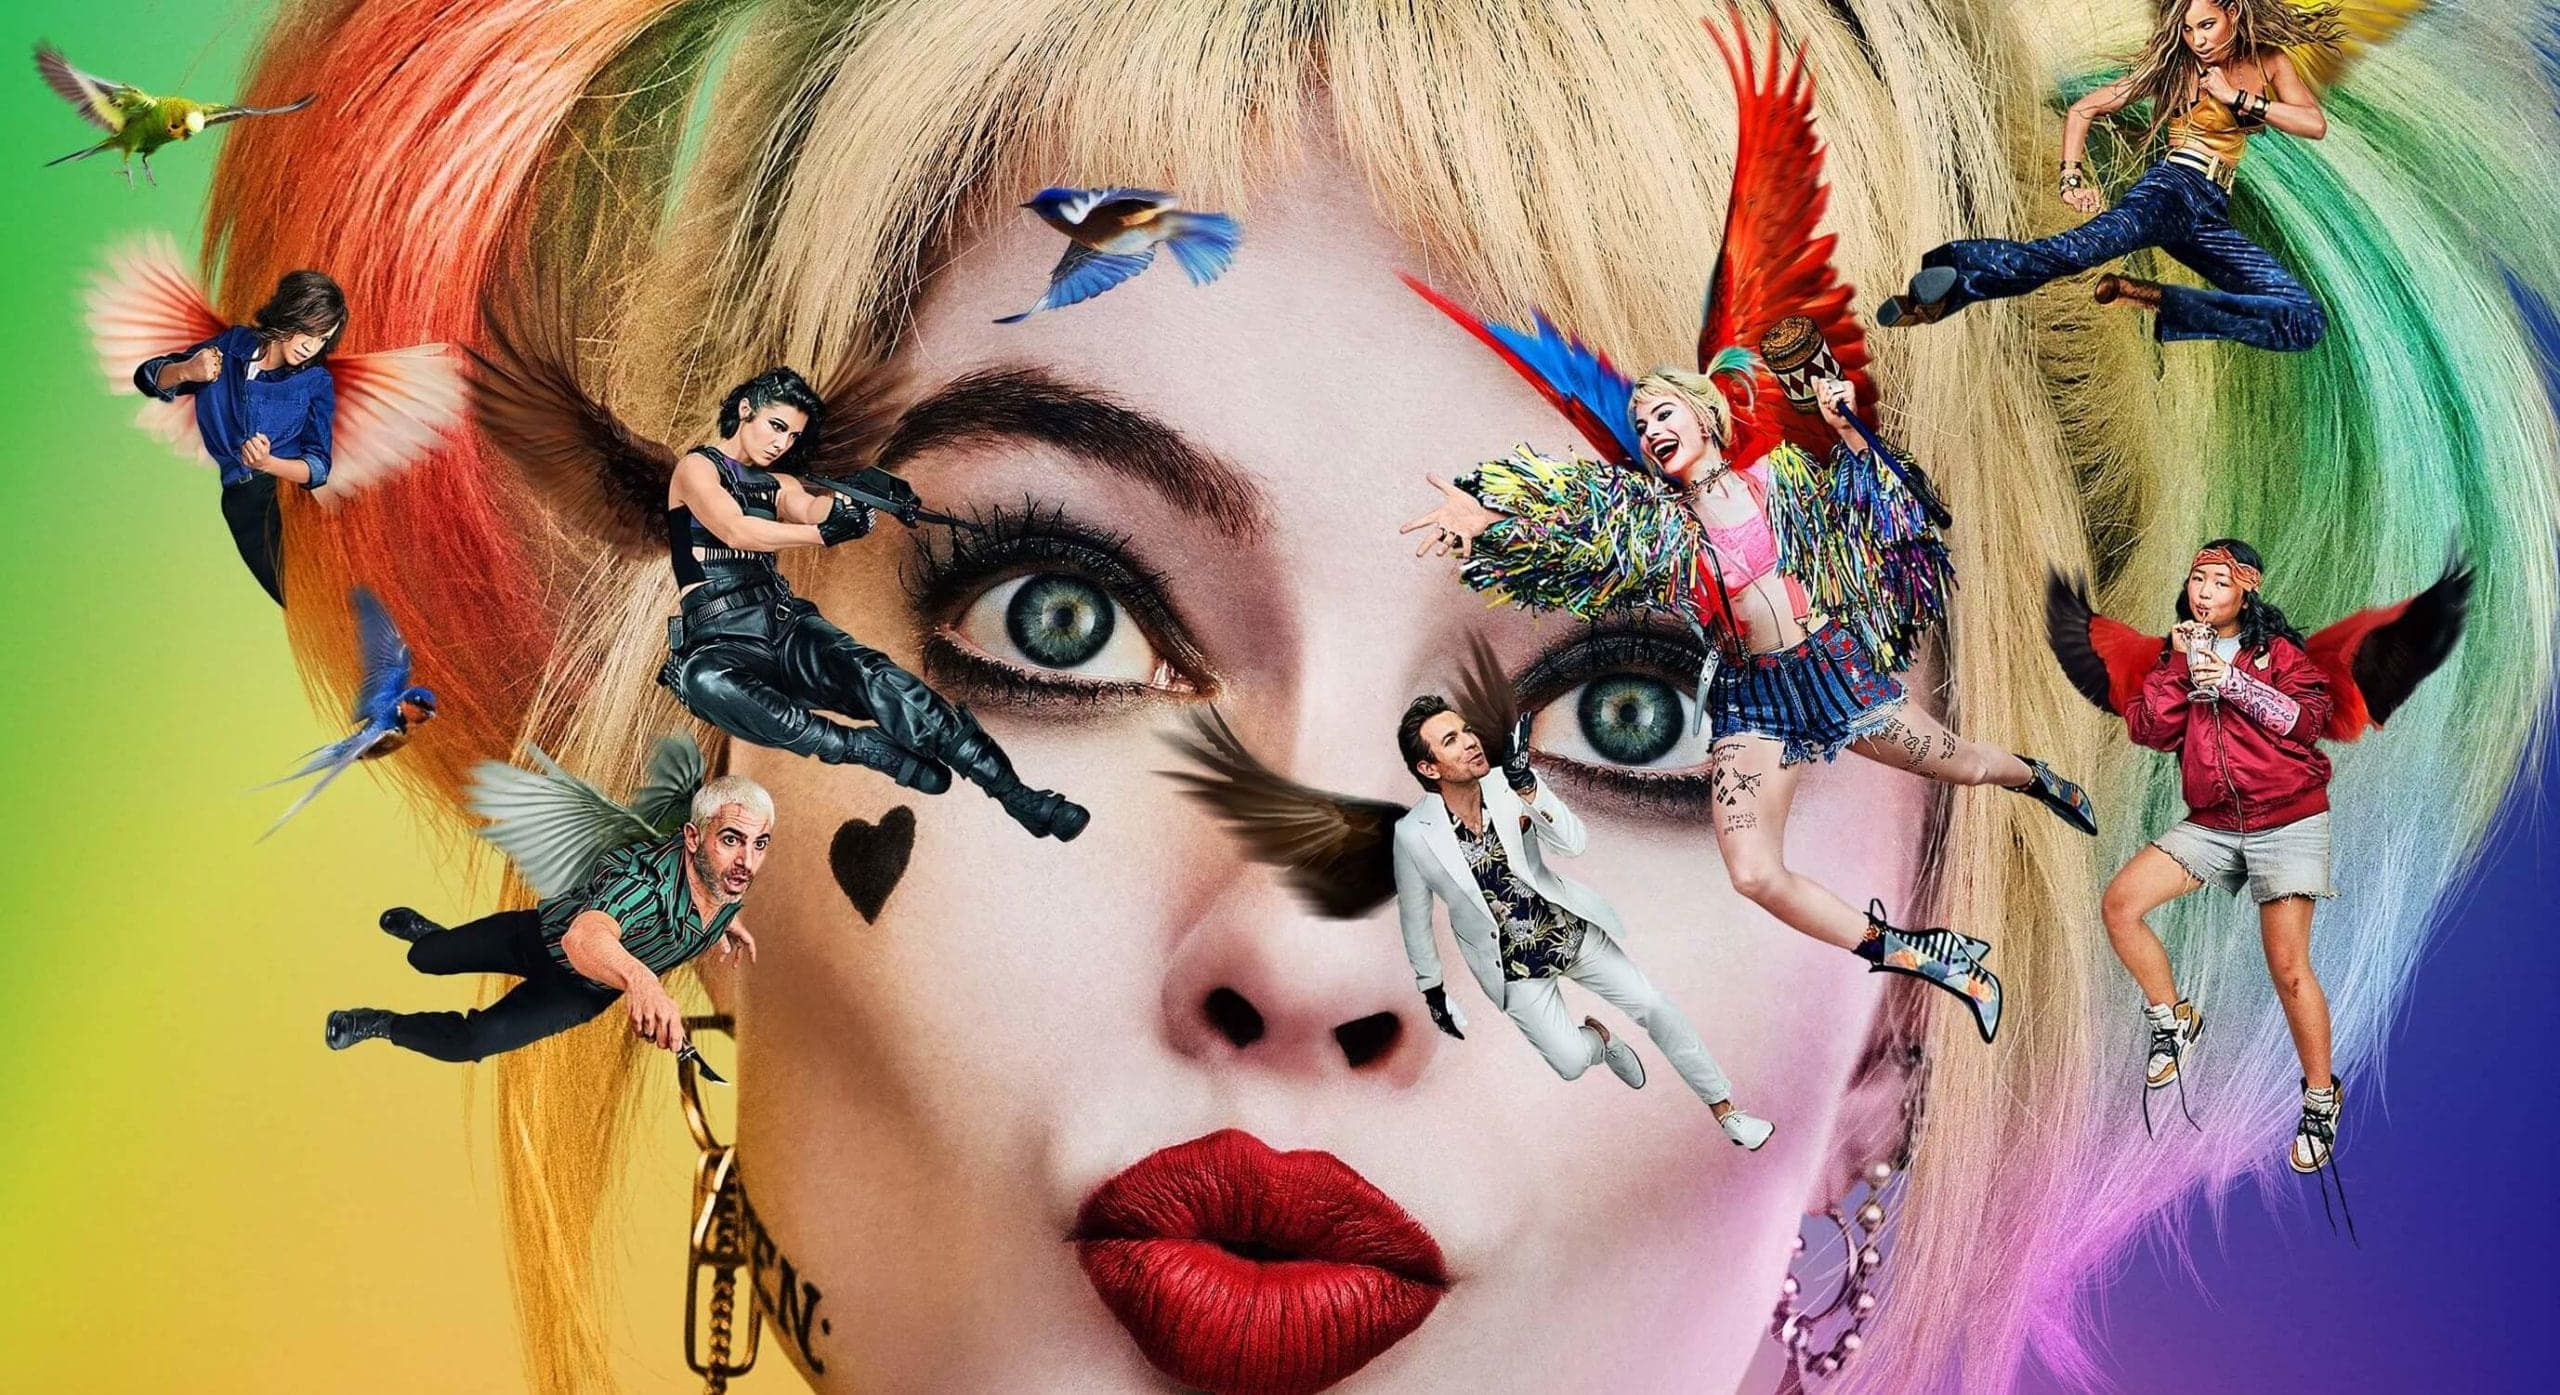 New Birds of Prey Poster Movie Leaks